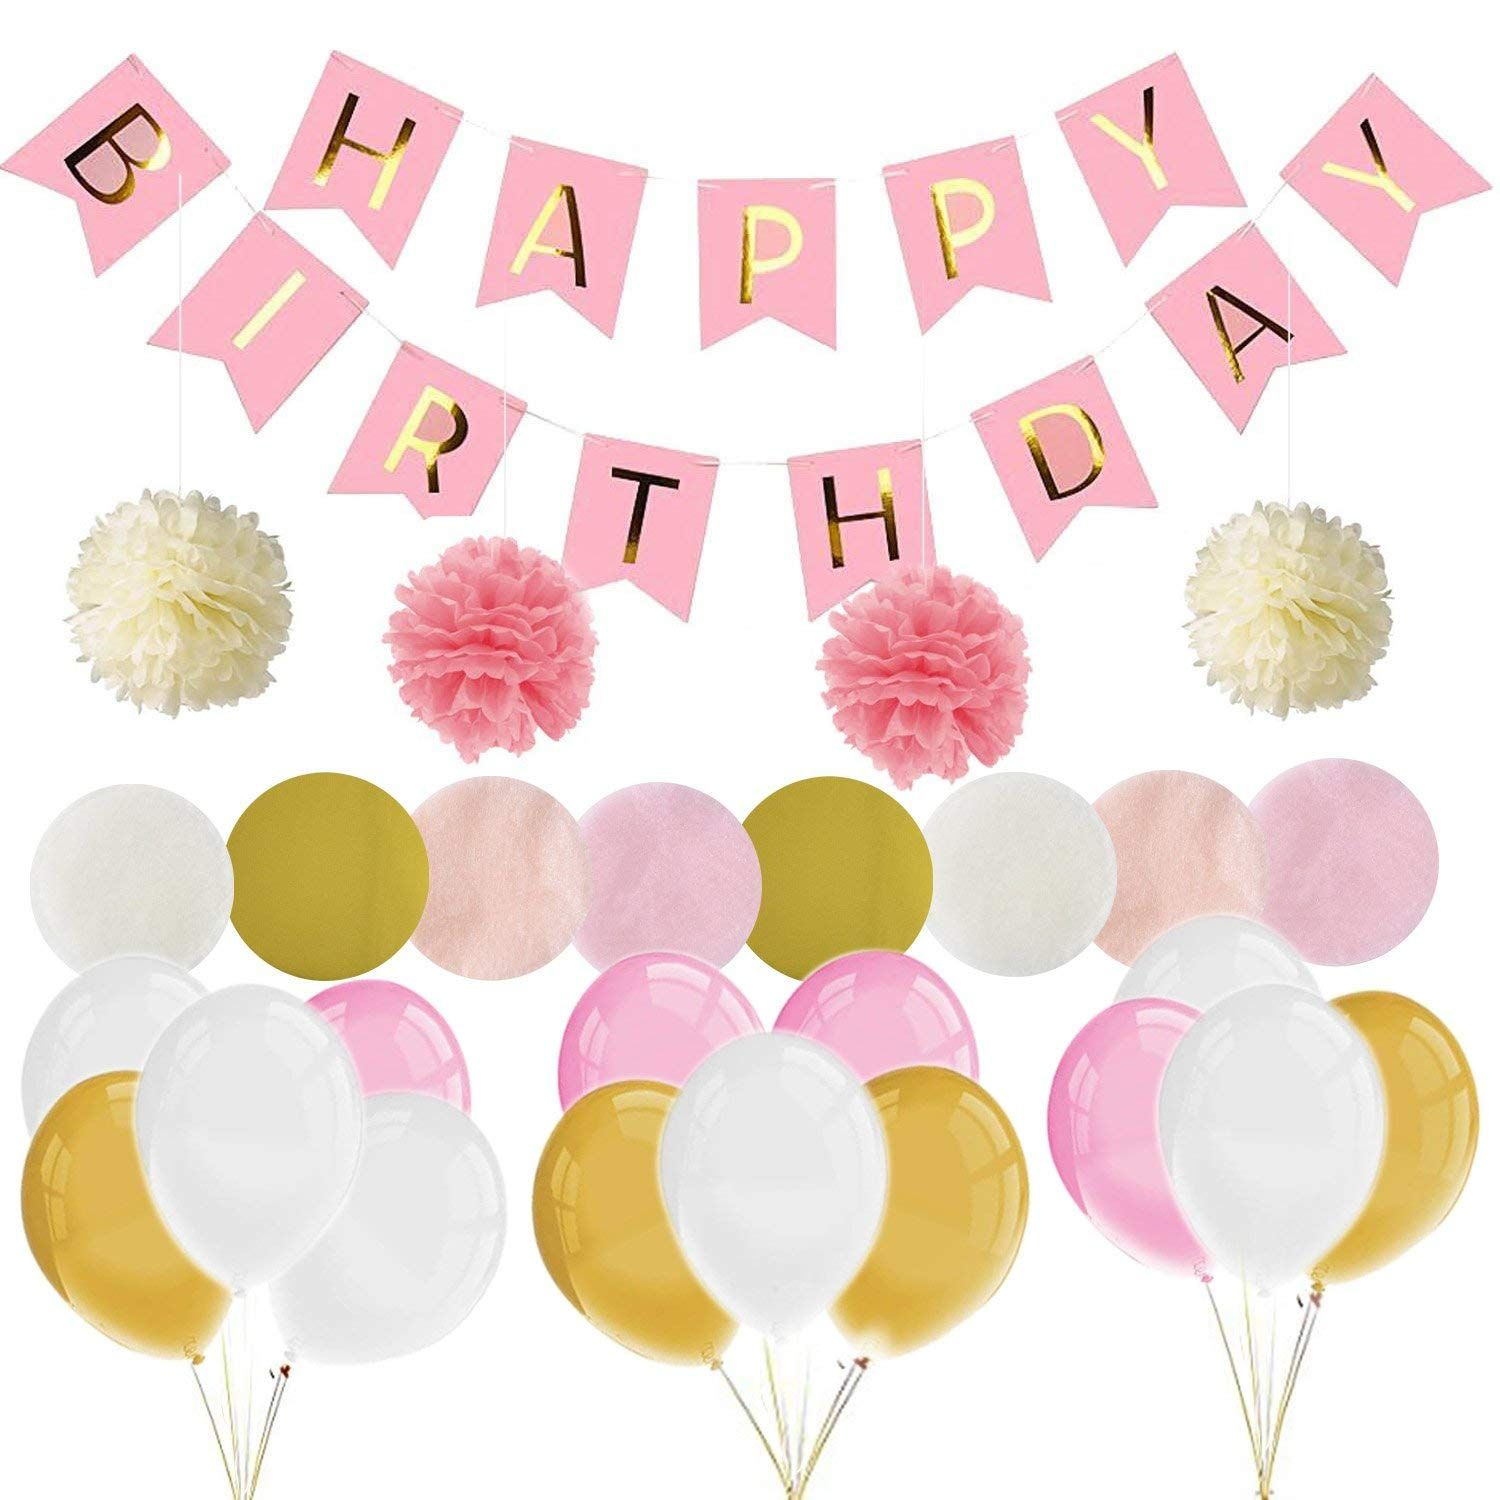 Party Decoration Balloons Happy Birthday Party Supplies Bunting Banner Tissue Pa Birthday Party Decorations Kids Birthday Supplies Blue Baby Shower Decorations